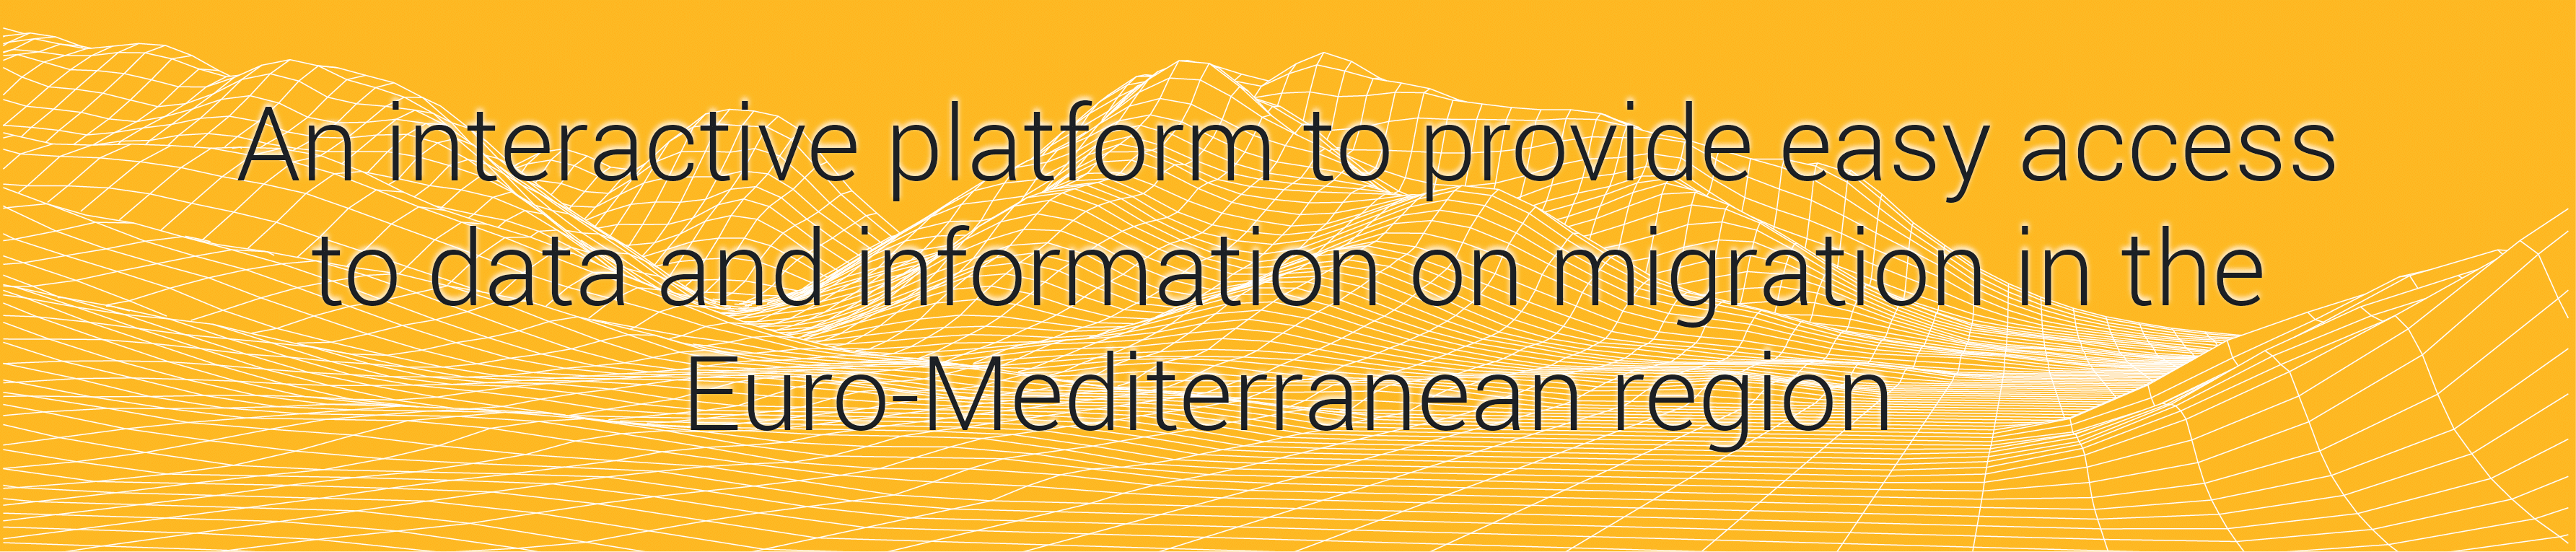 An interactive platform to provide easy access to data and information on migration in the Euro-Mediterranean region